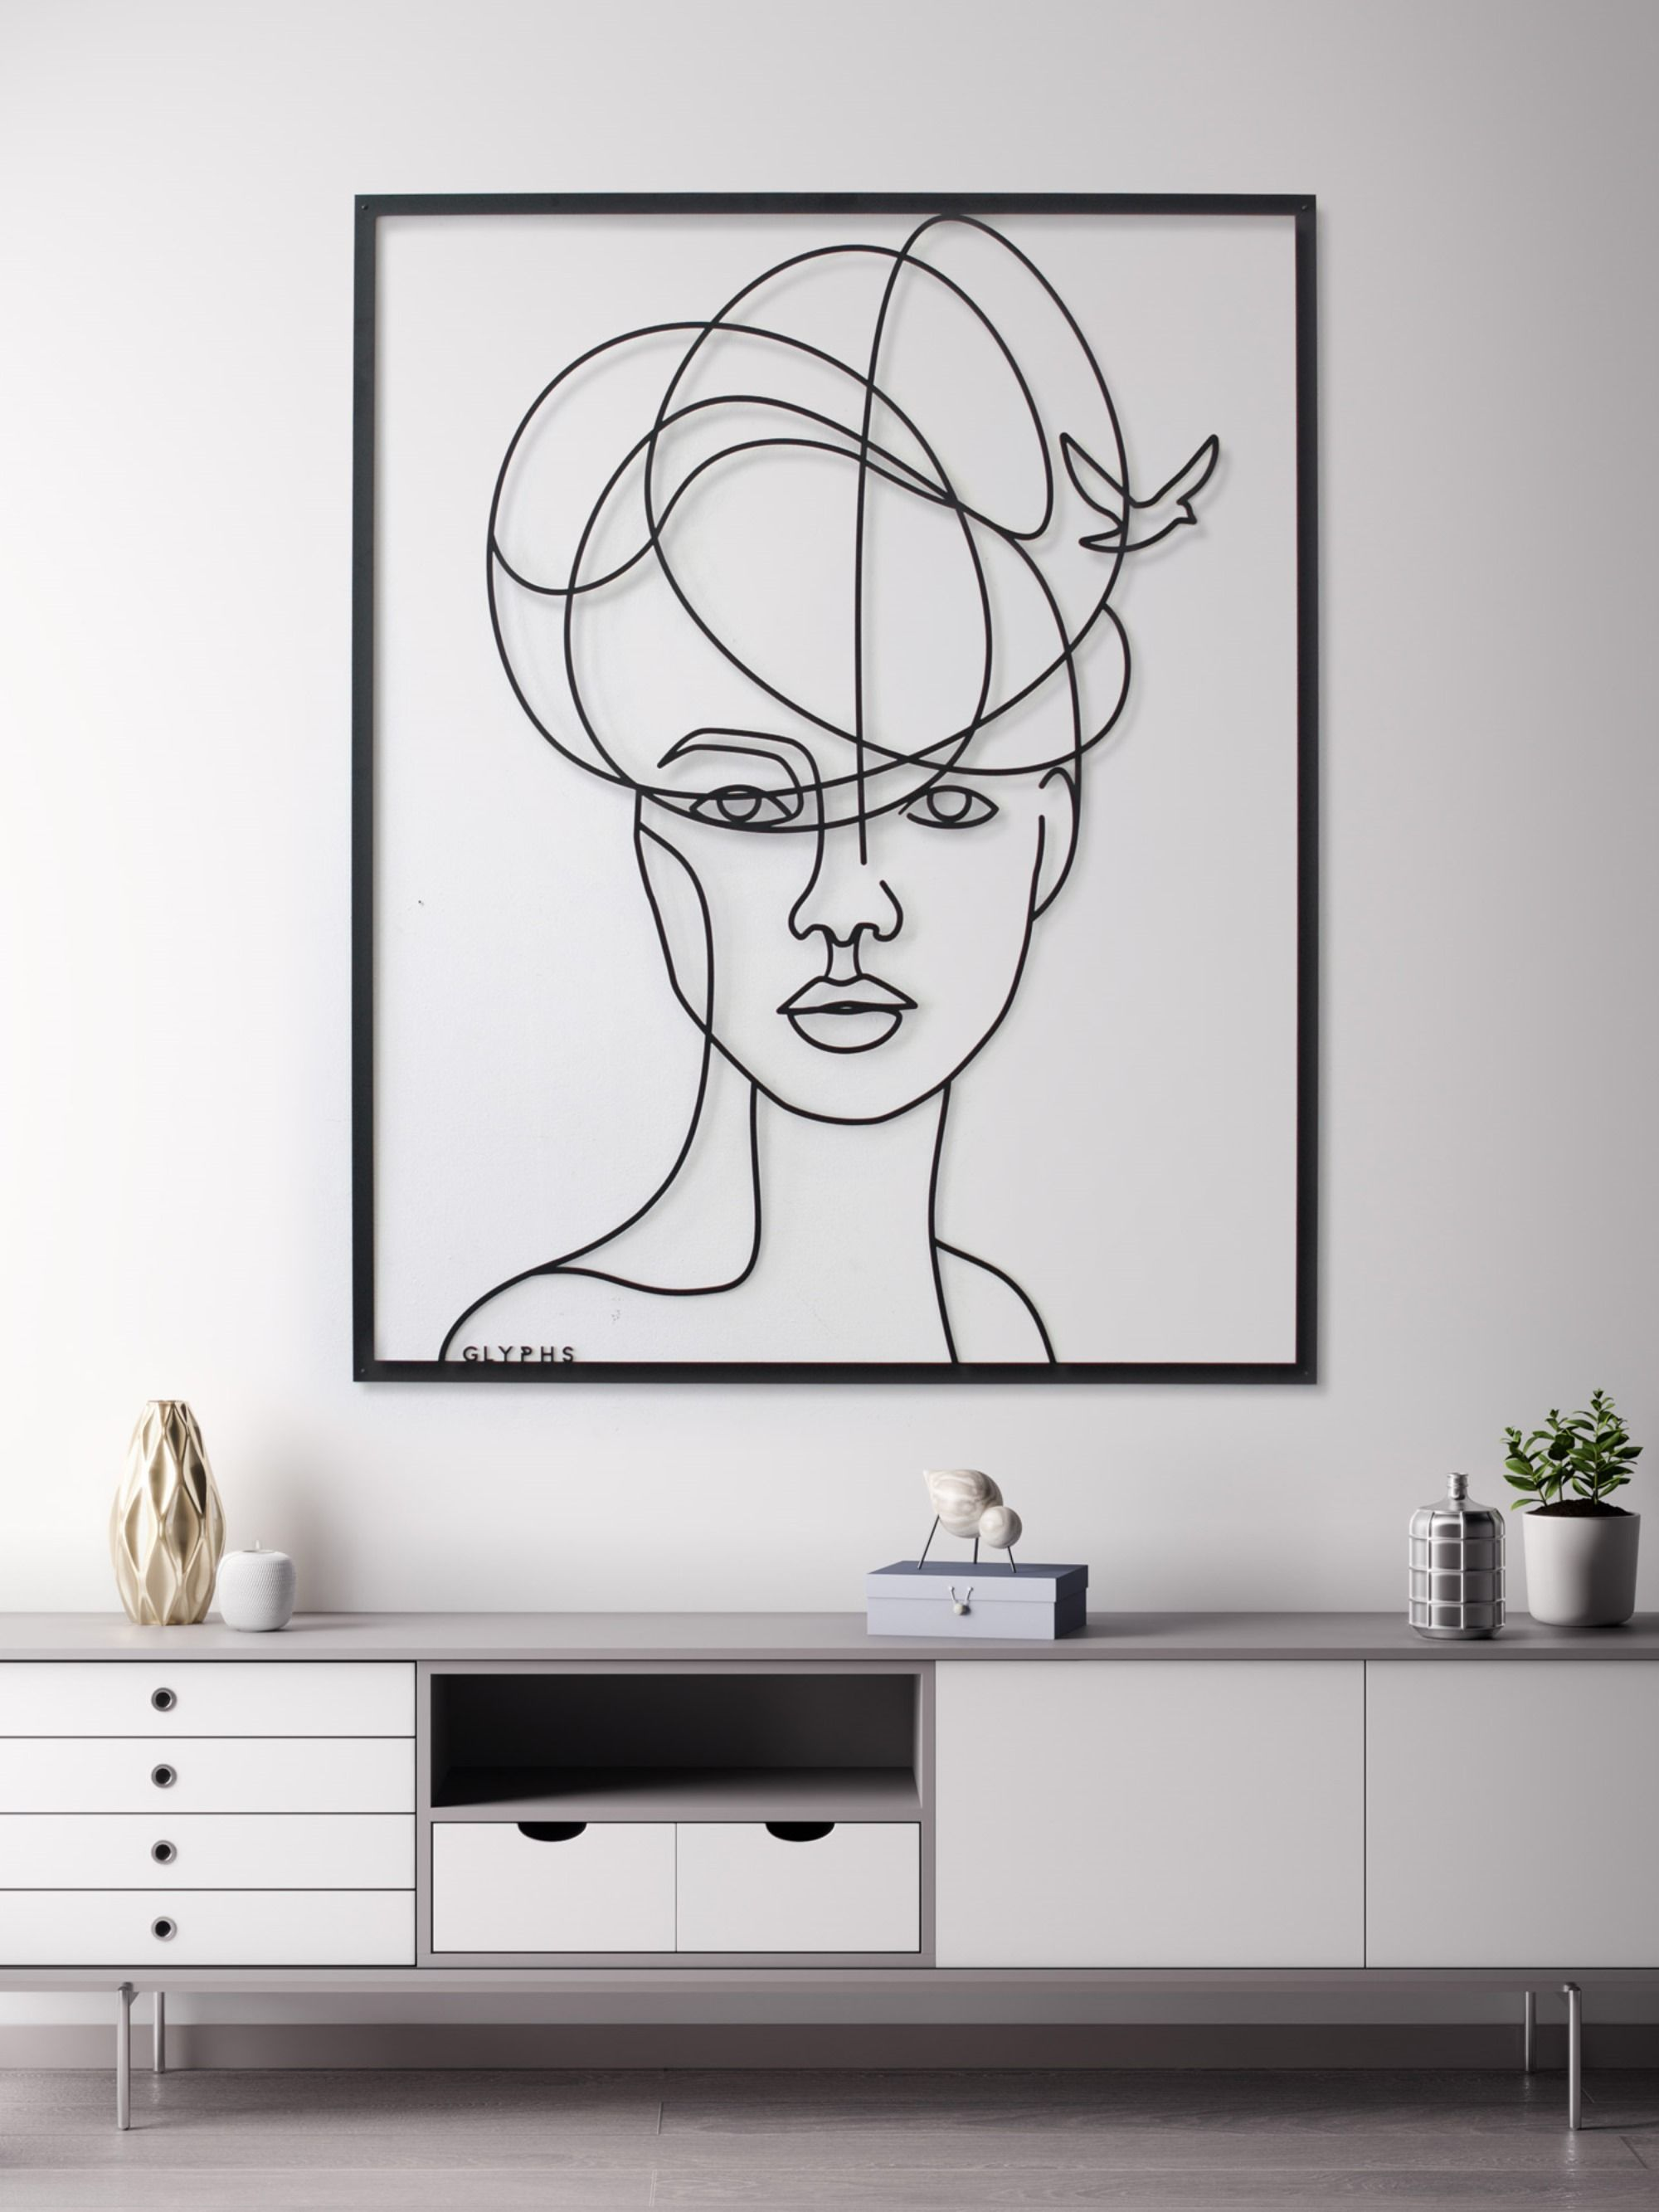 Free Hand Illustration Turned Into Metal Wall Art By Glyphs Design Hand Illustration Art Line Art